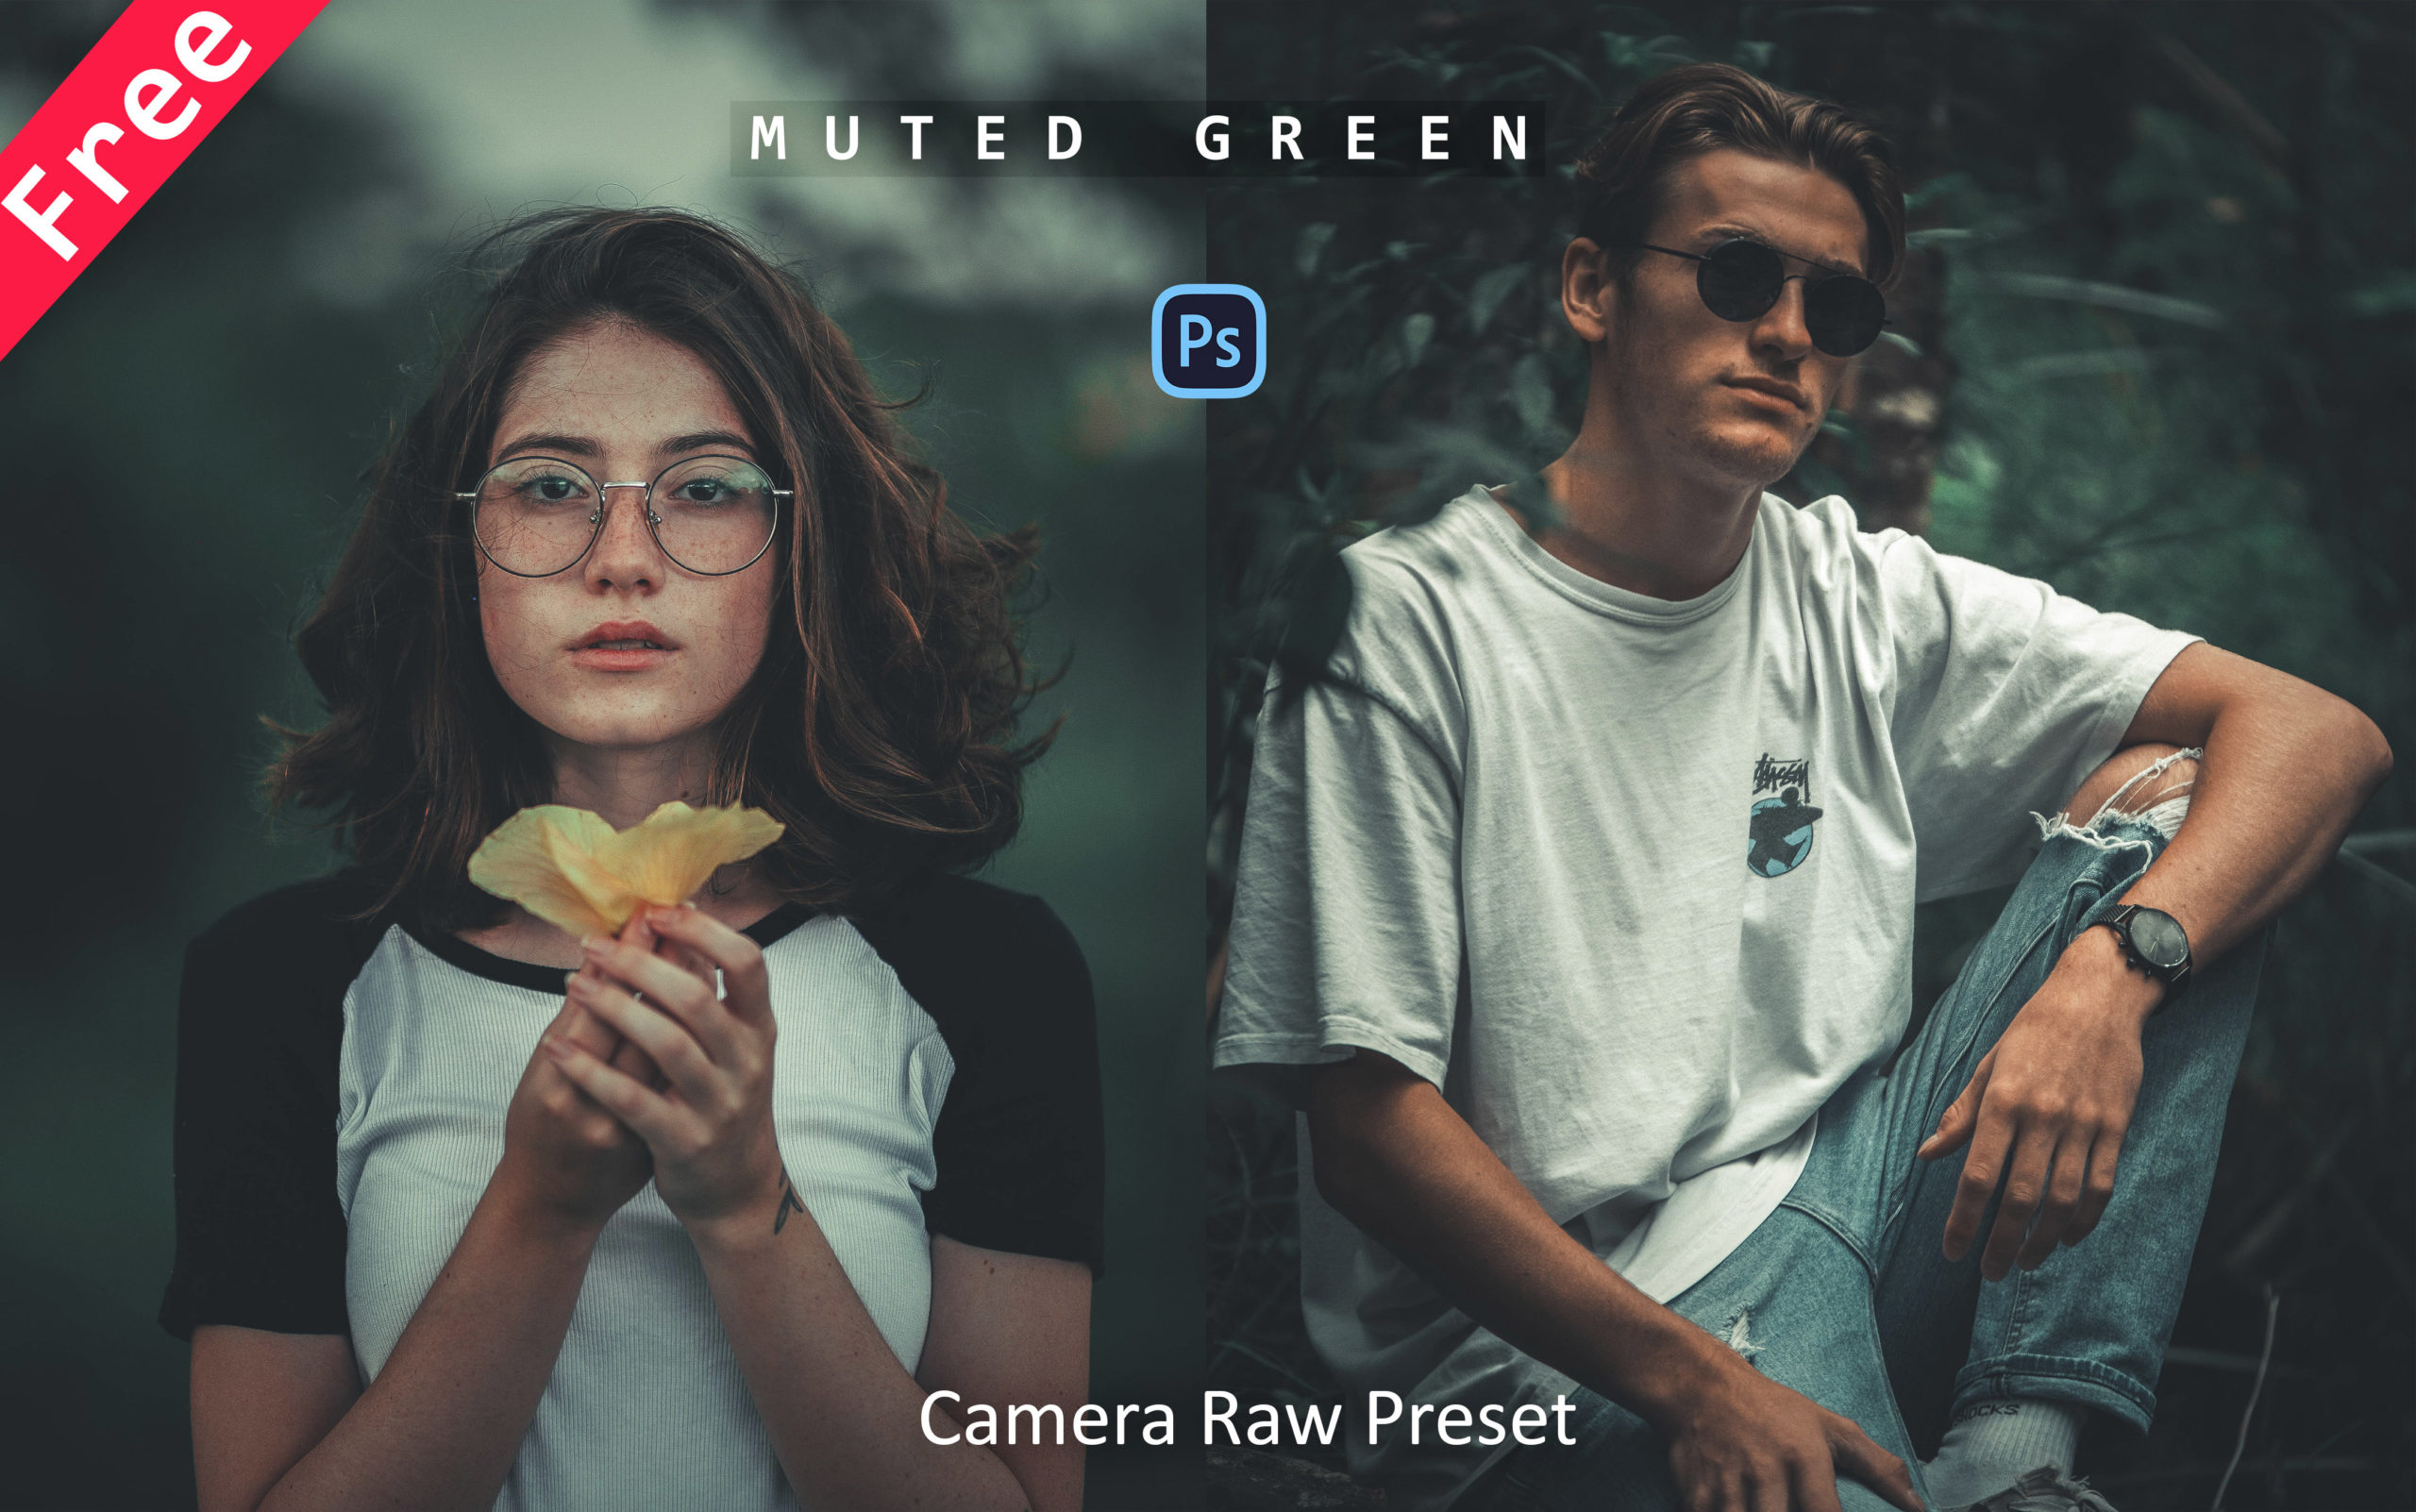 Download Muted Green Camera Raw Preset for Free | How to Edit Photos Like Muted Green Tone in Photoshop